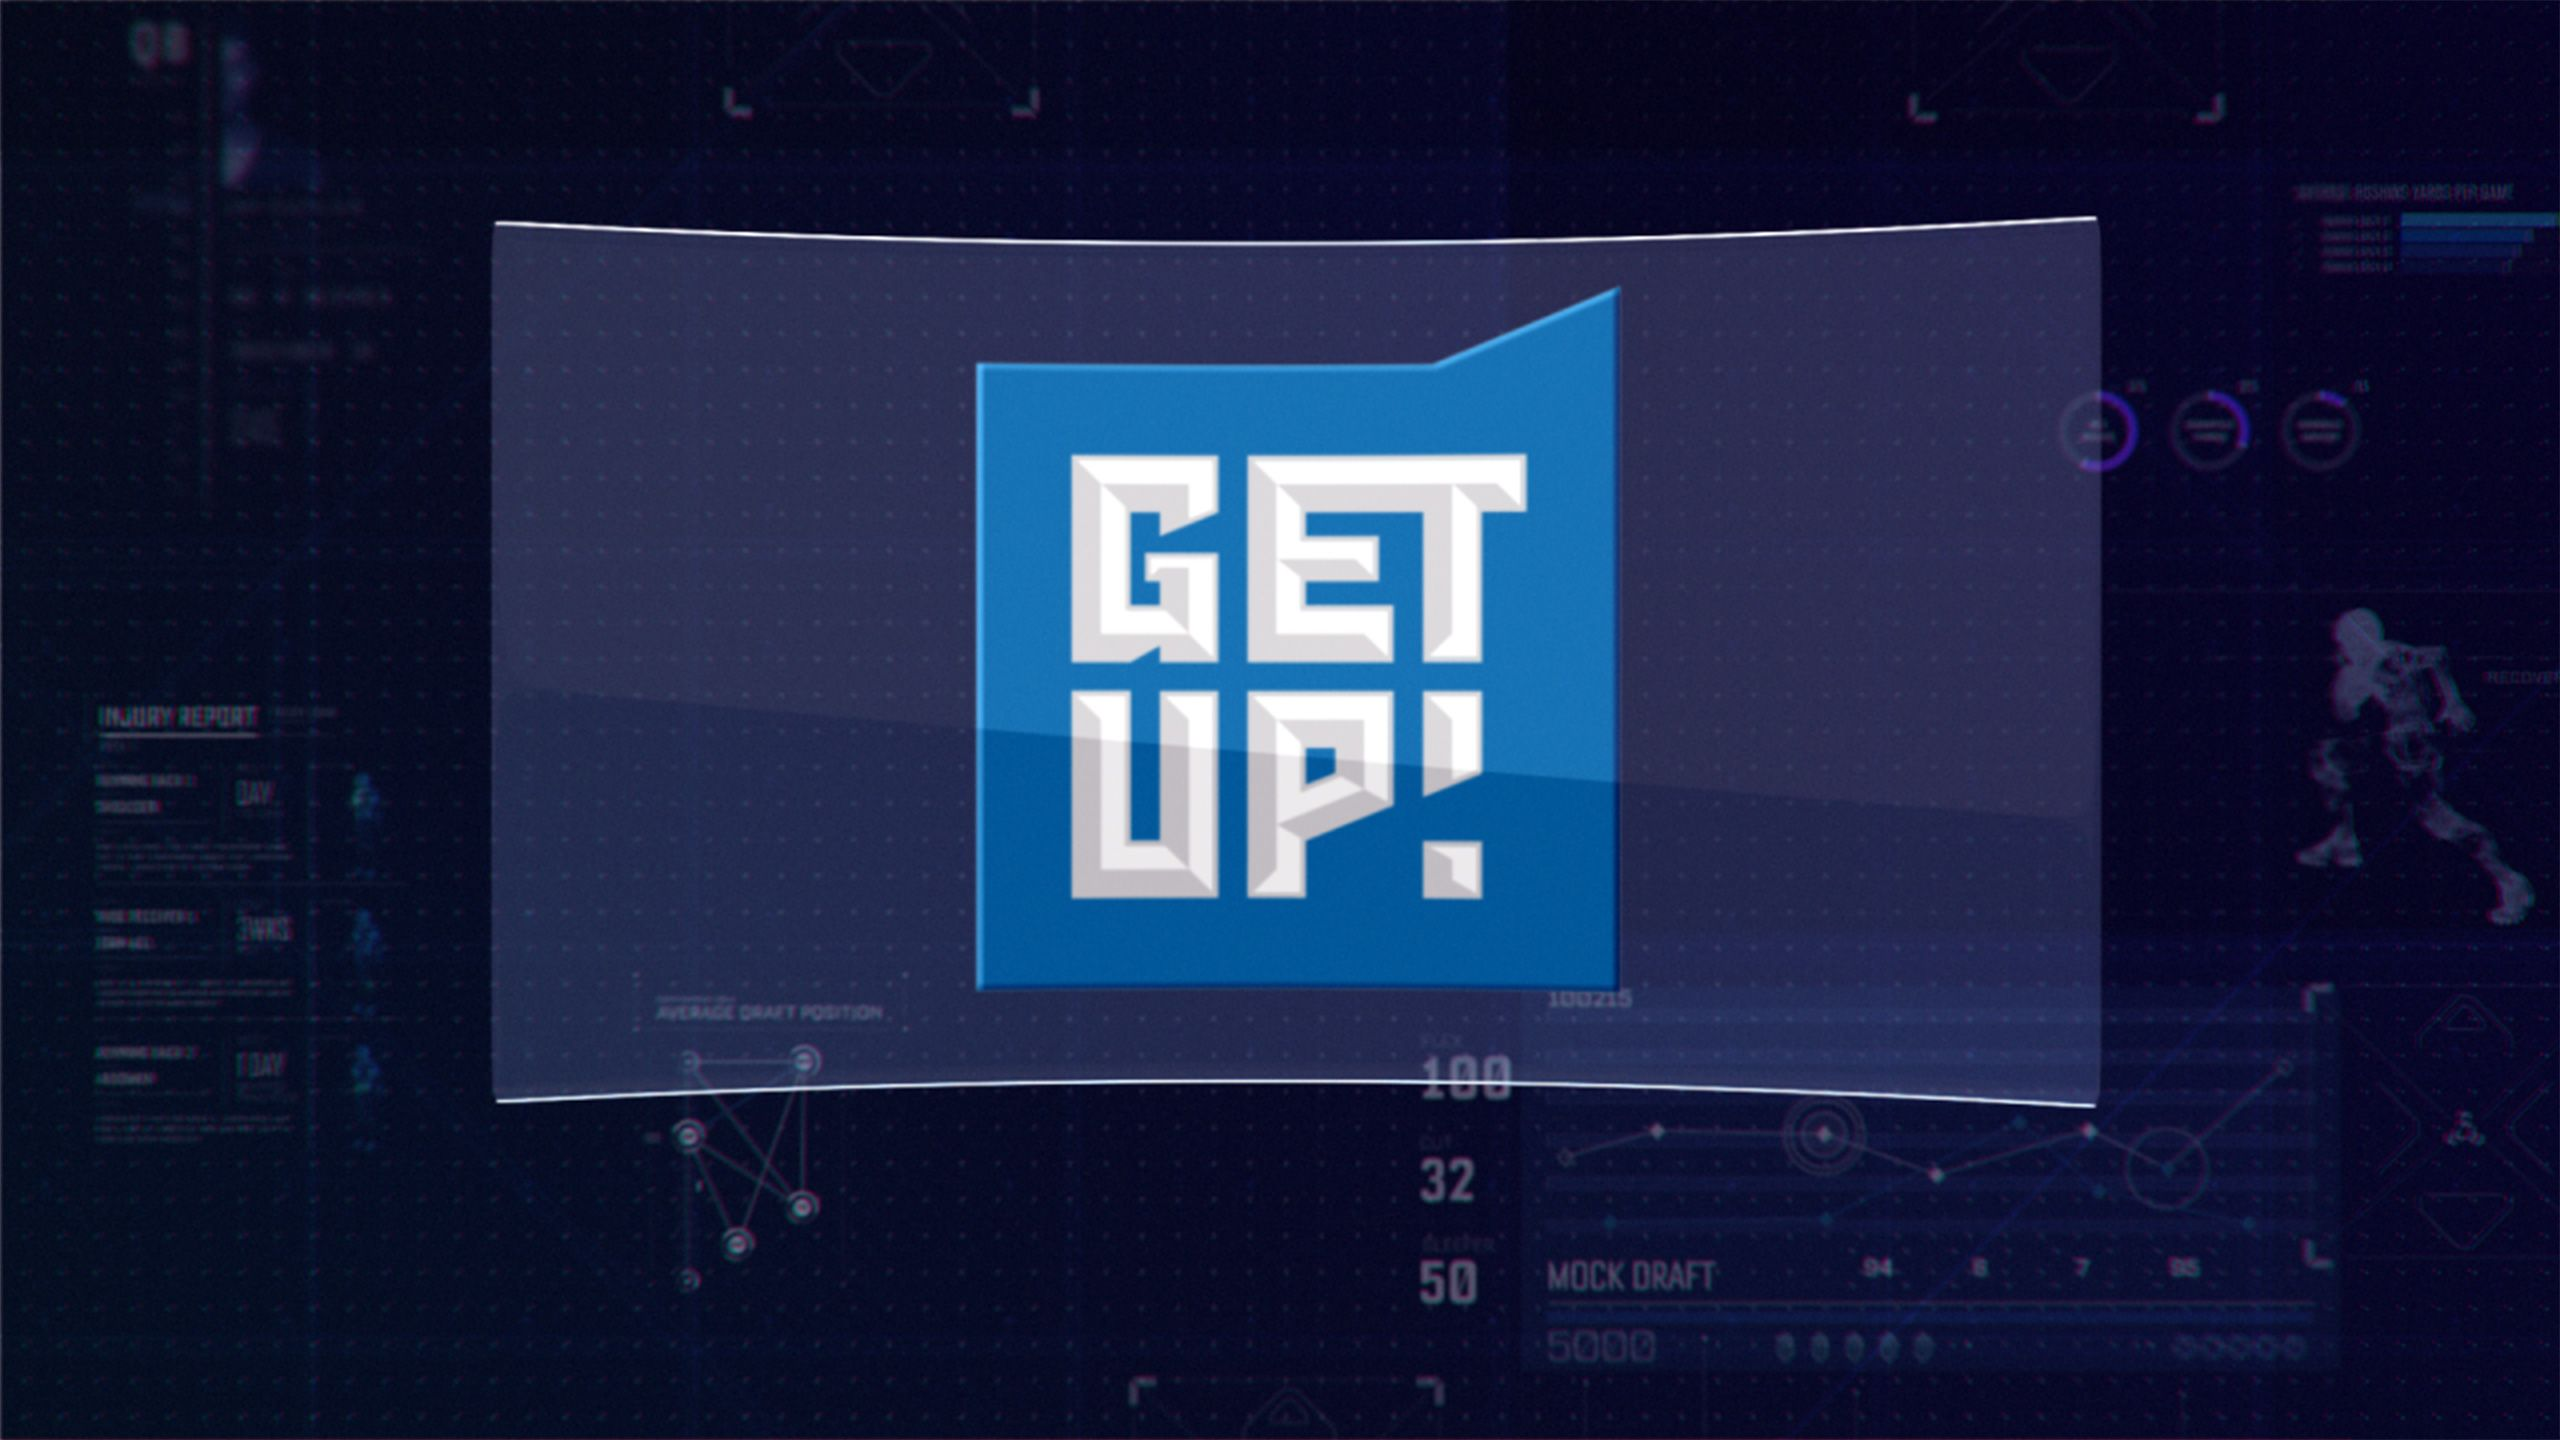 Tue 8/14 - Get Up! as Part of The ESPN Fantasy Football Marathon